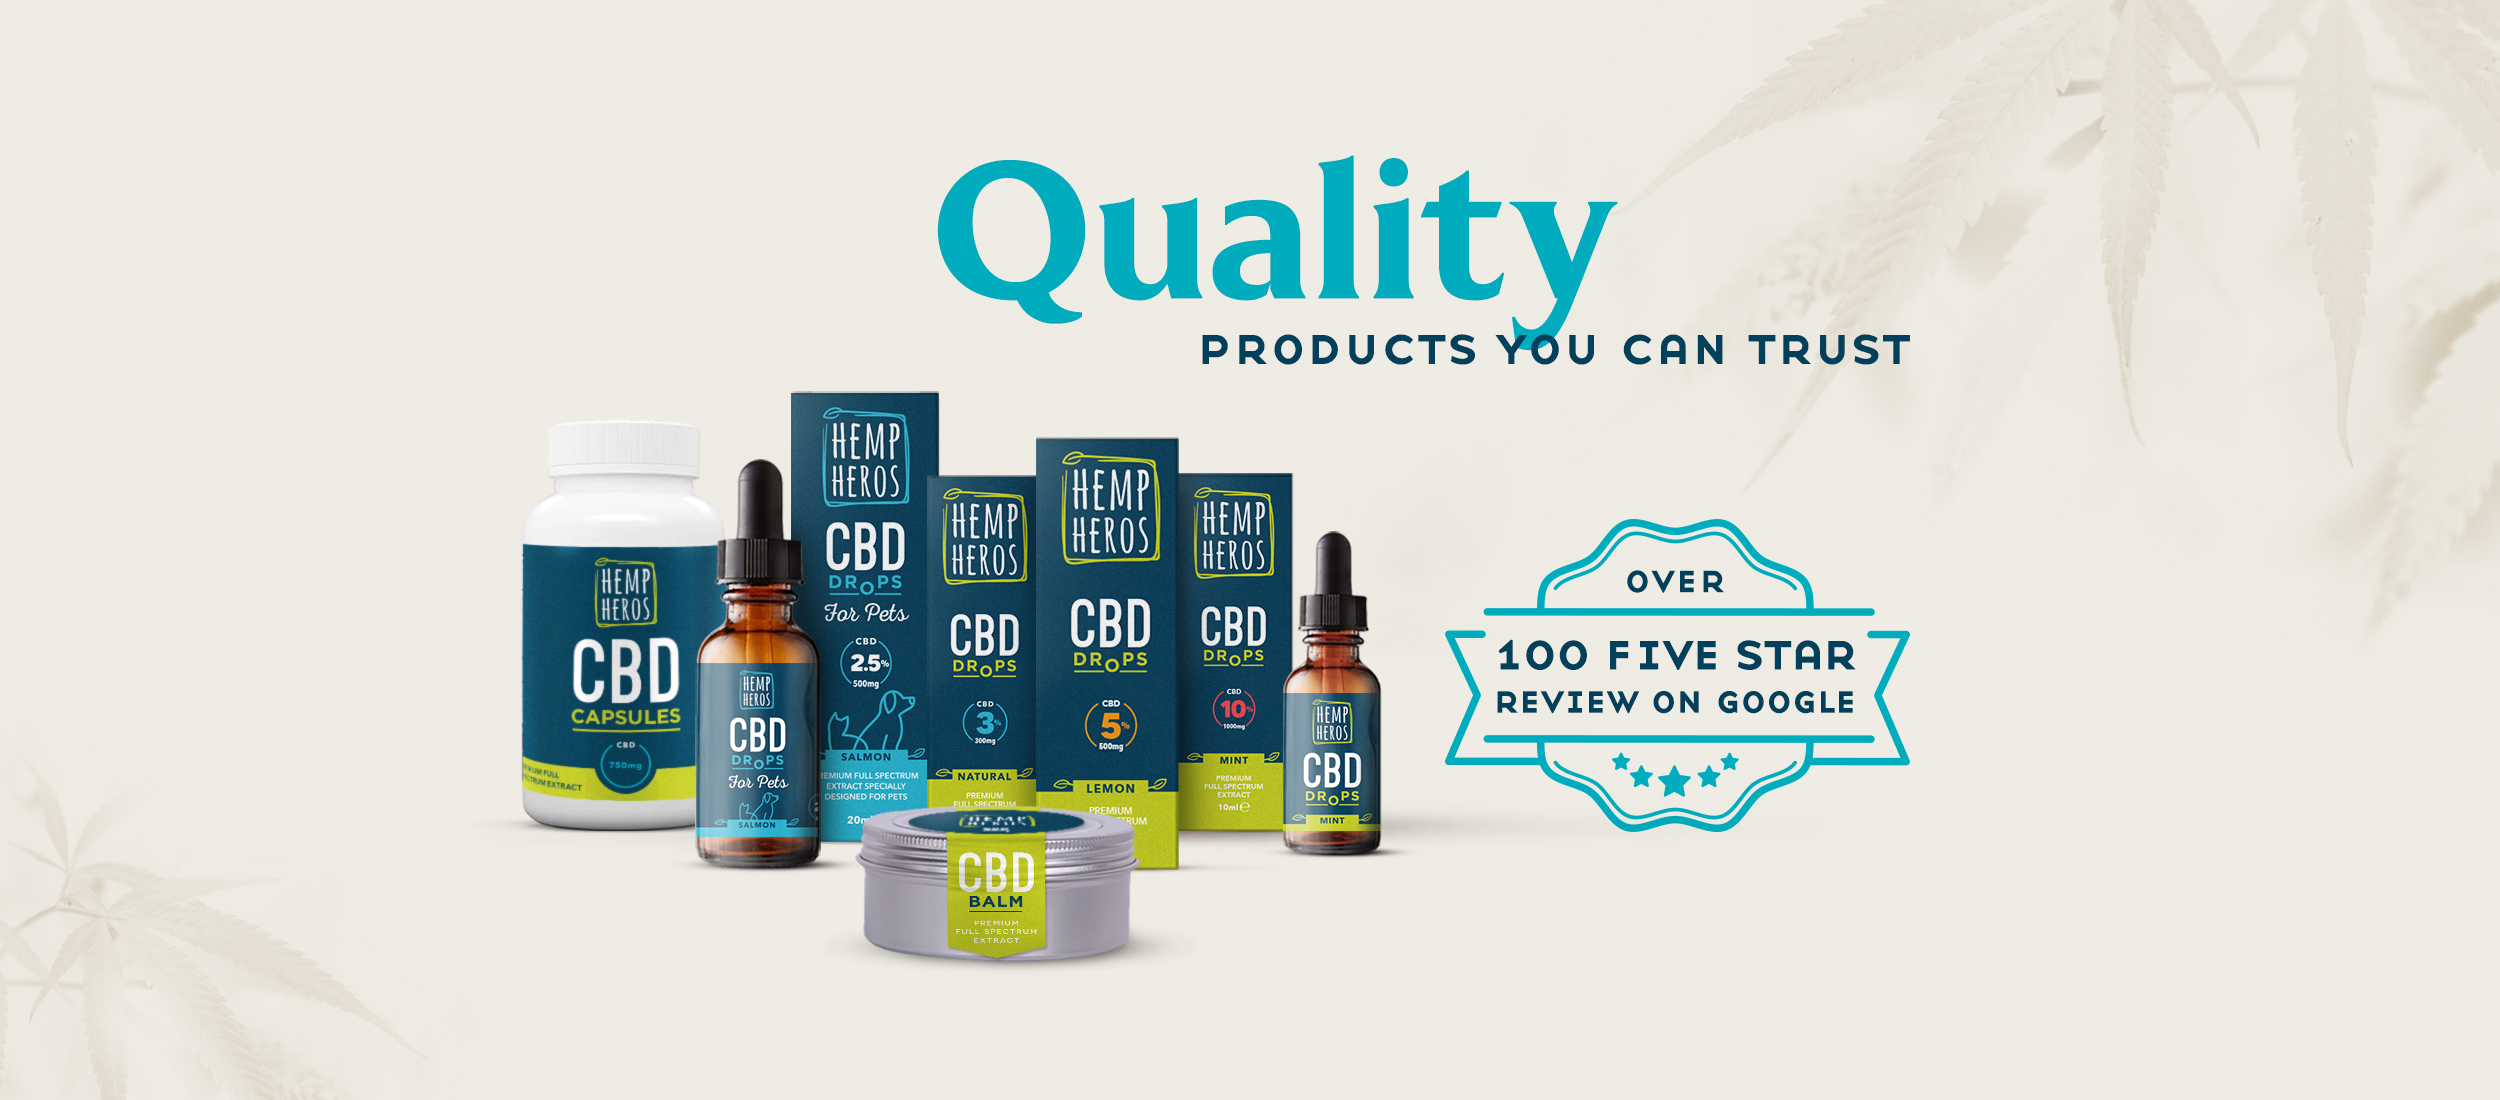 Hemp Heros products